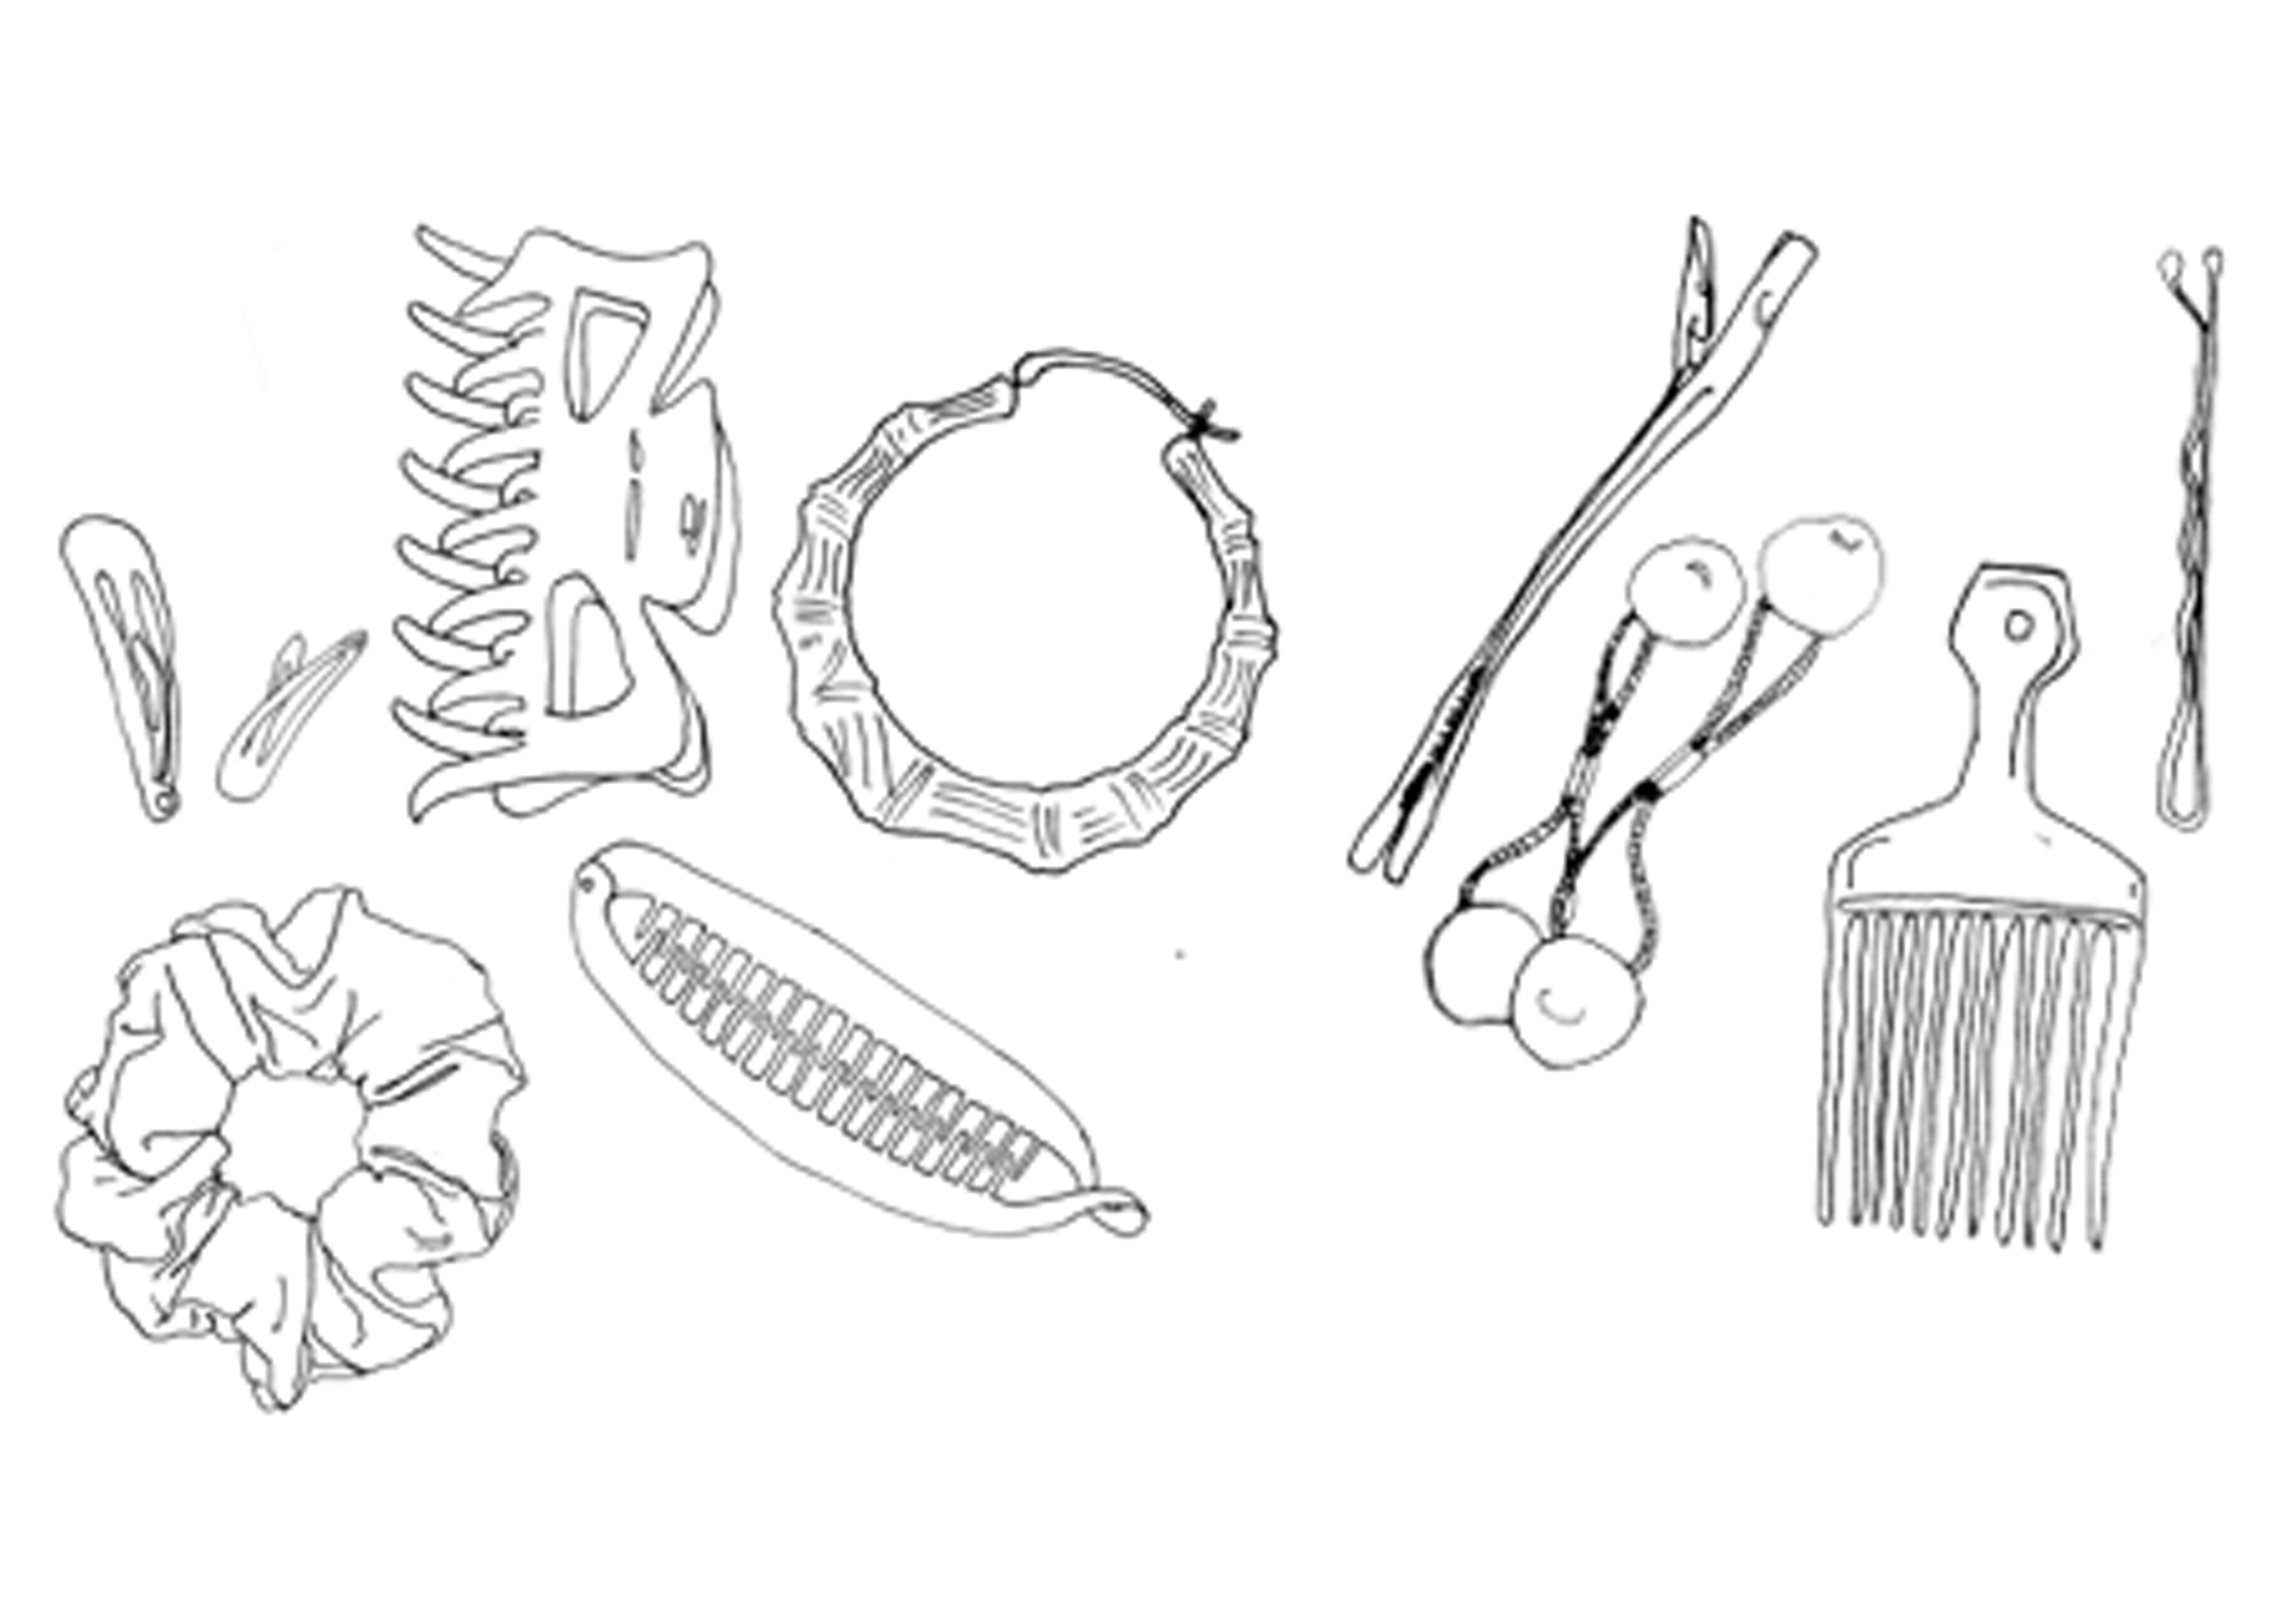 Sketches of childhood objects